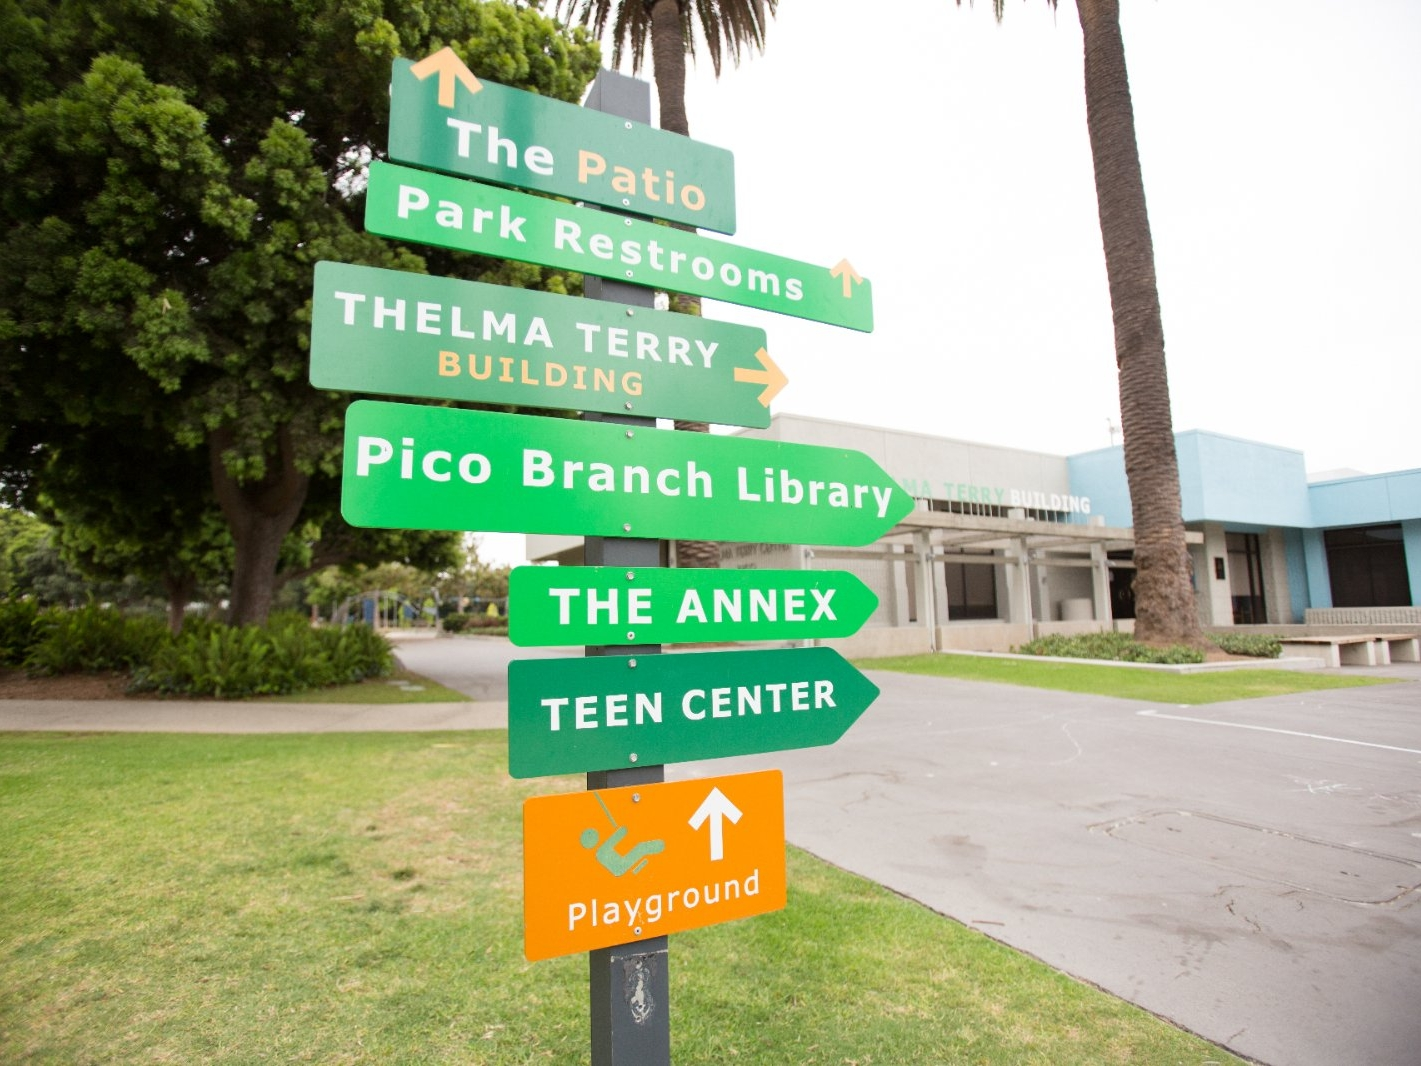 Road signs pointing to recreation areas.